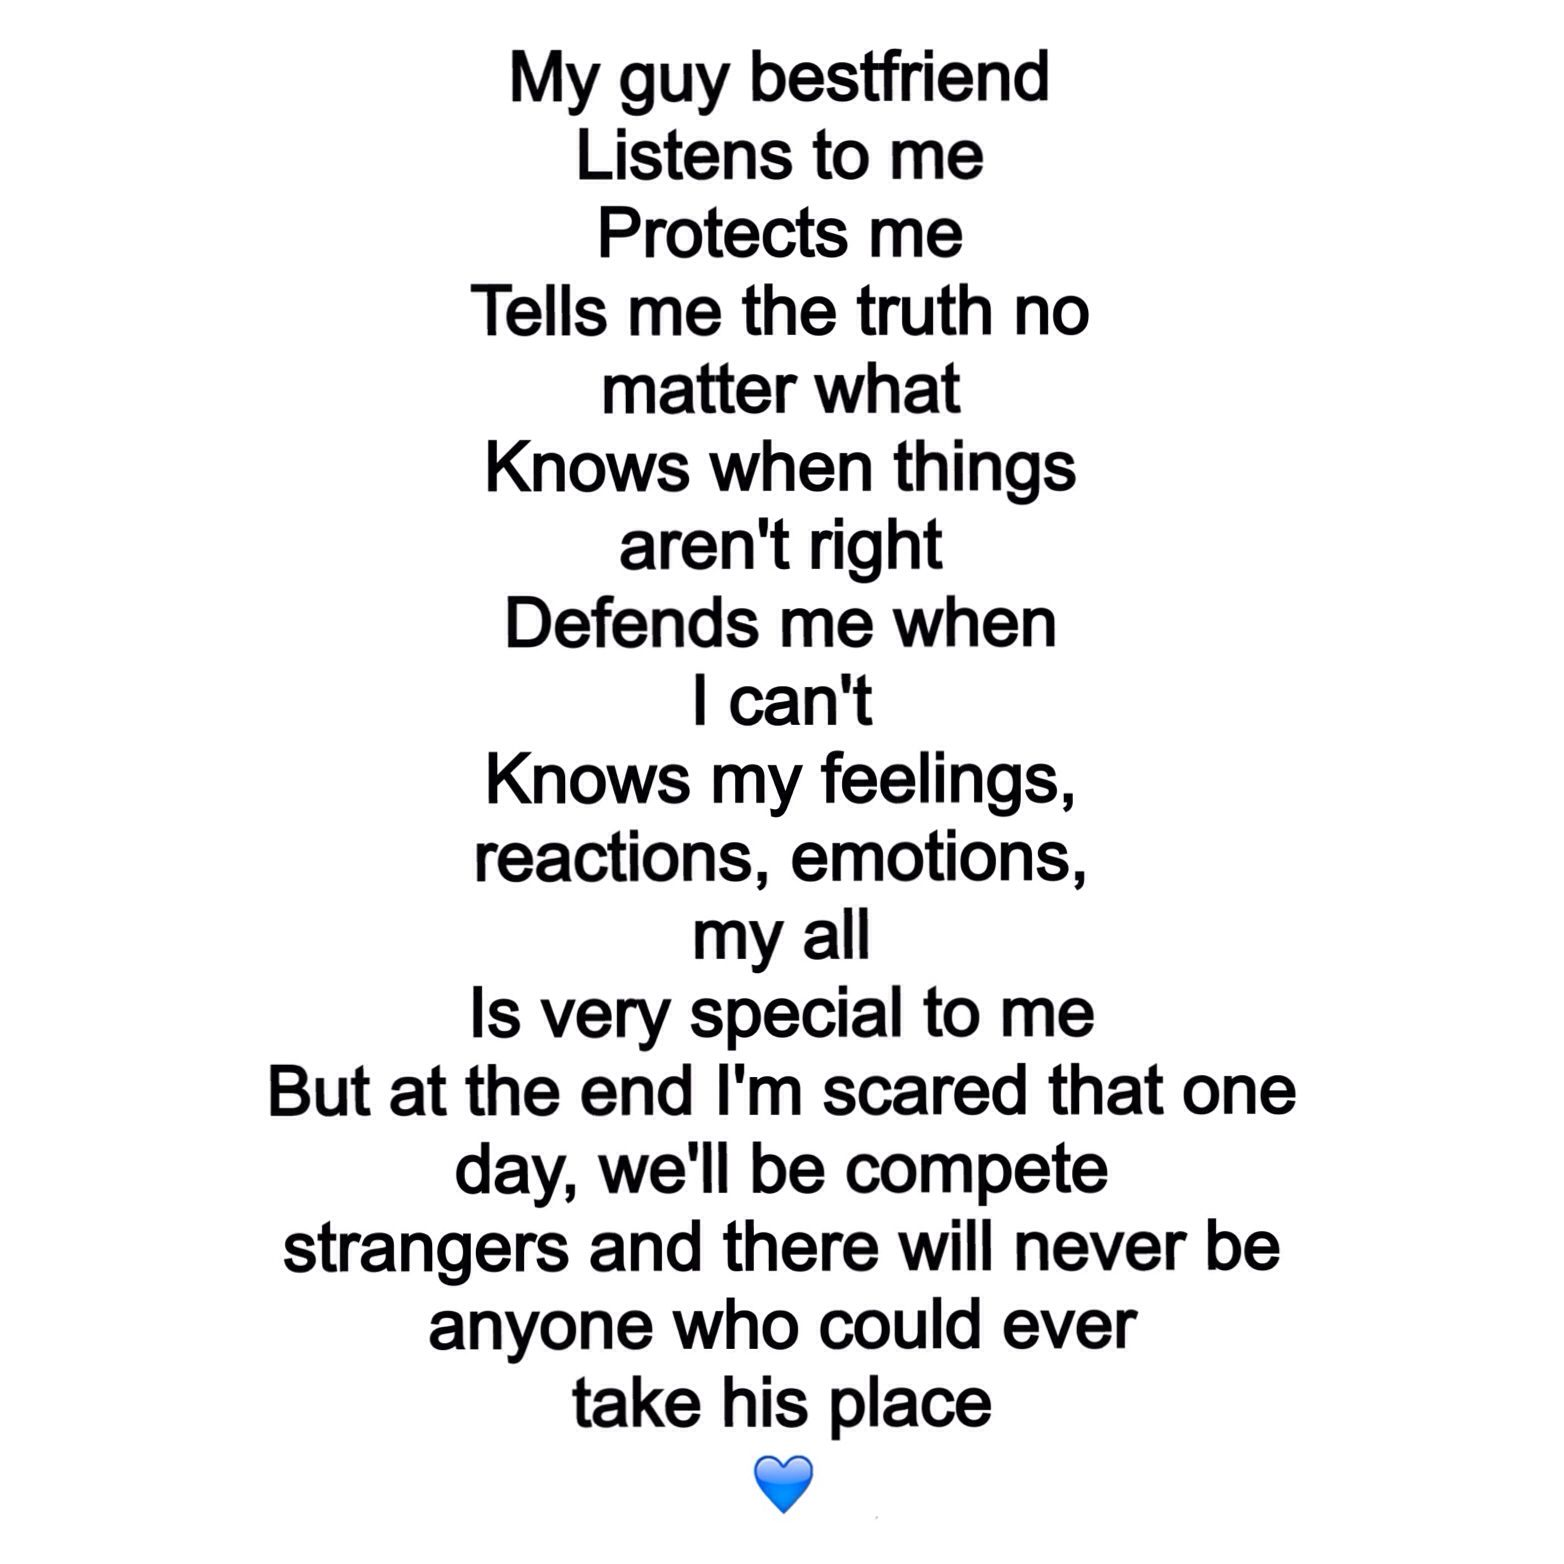 My guy best friend found this and I love it, describes him